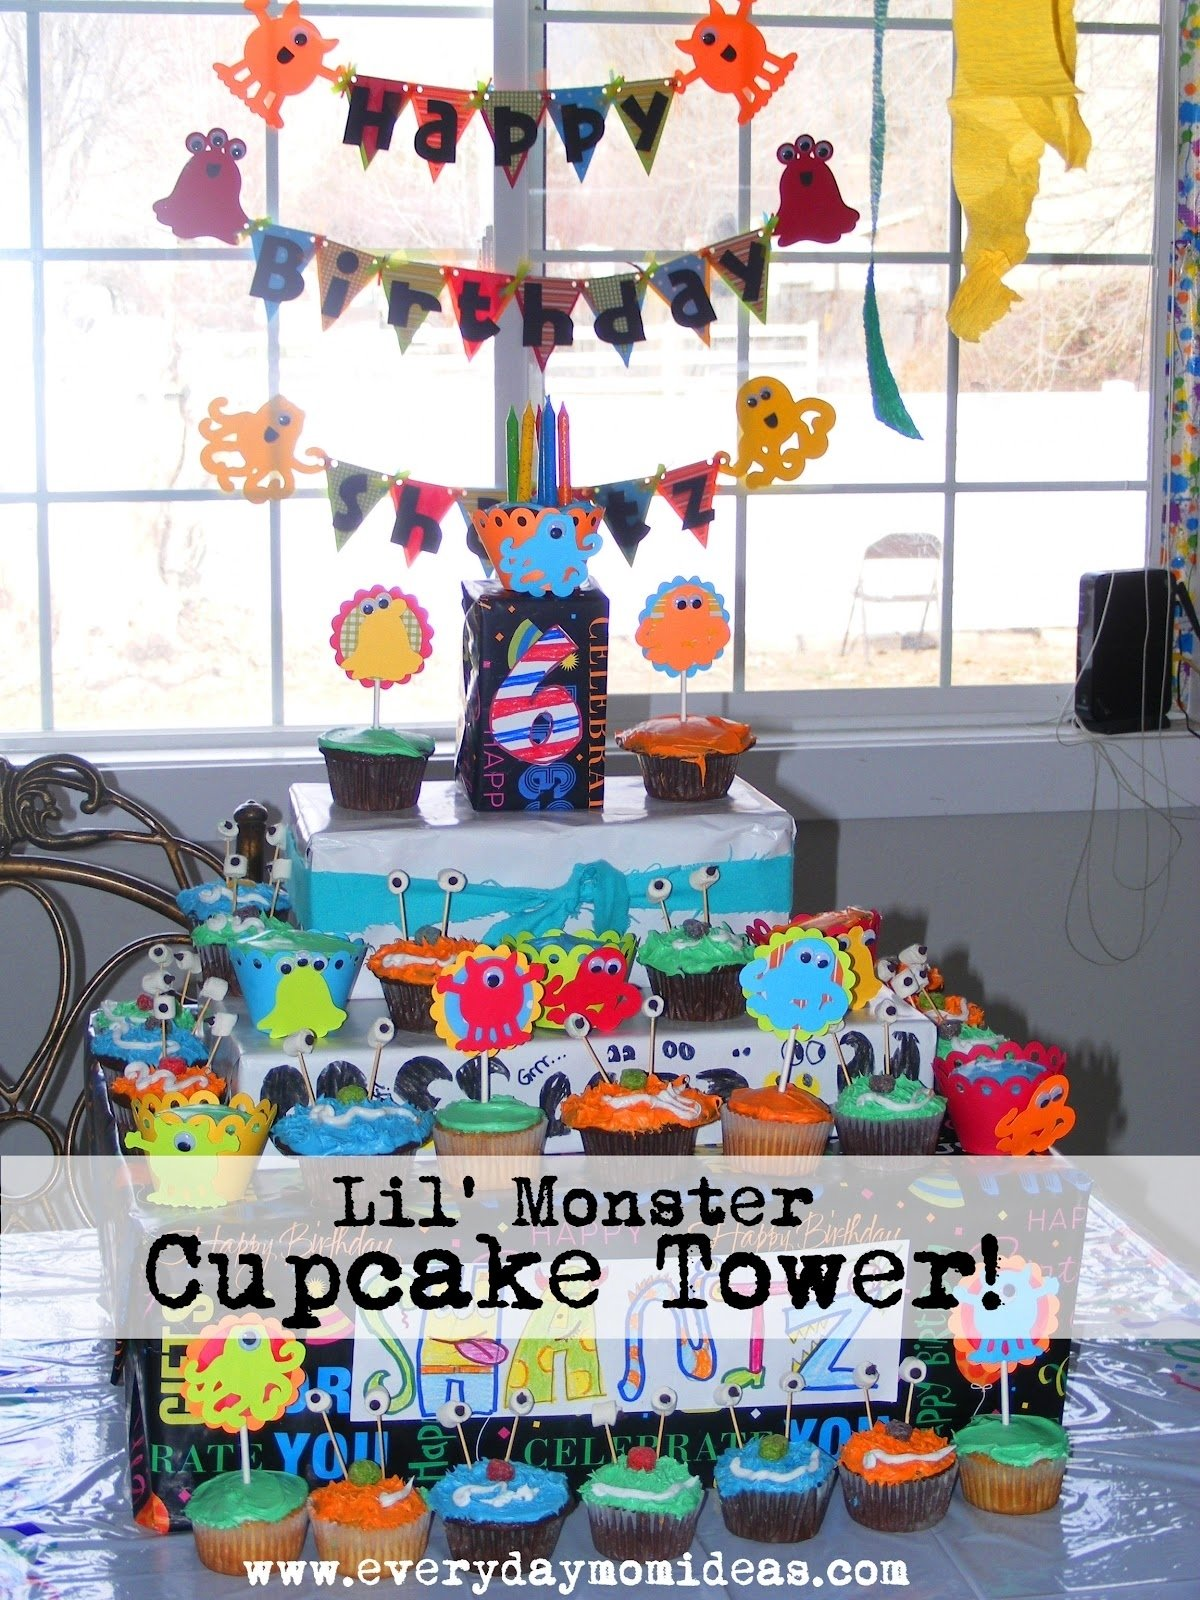 10 Cute Ideas For A 1 Year Old Birthday Party little monster bash birthday party ideas everyday mom ideas 10